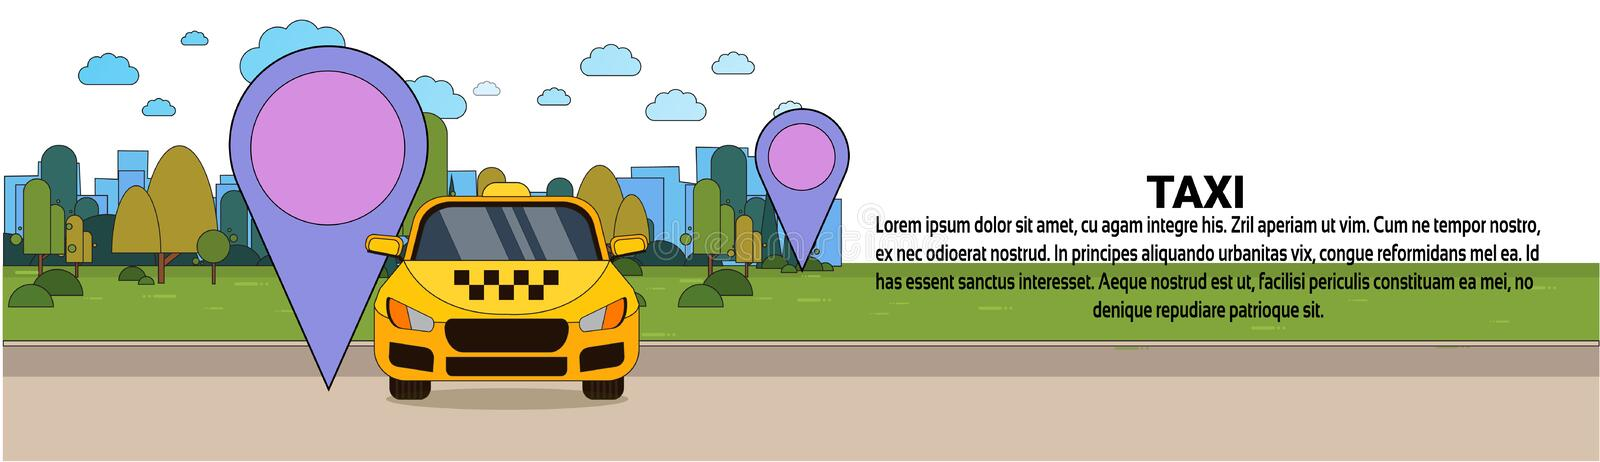 Yellow Taxi Car With Gps Location Pointer Online Cab Service Concept Horizontal Banner. Flat Vector Illustration vector illustration